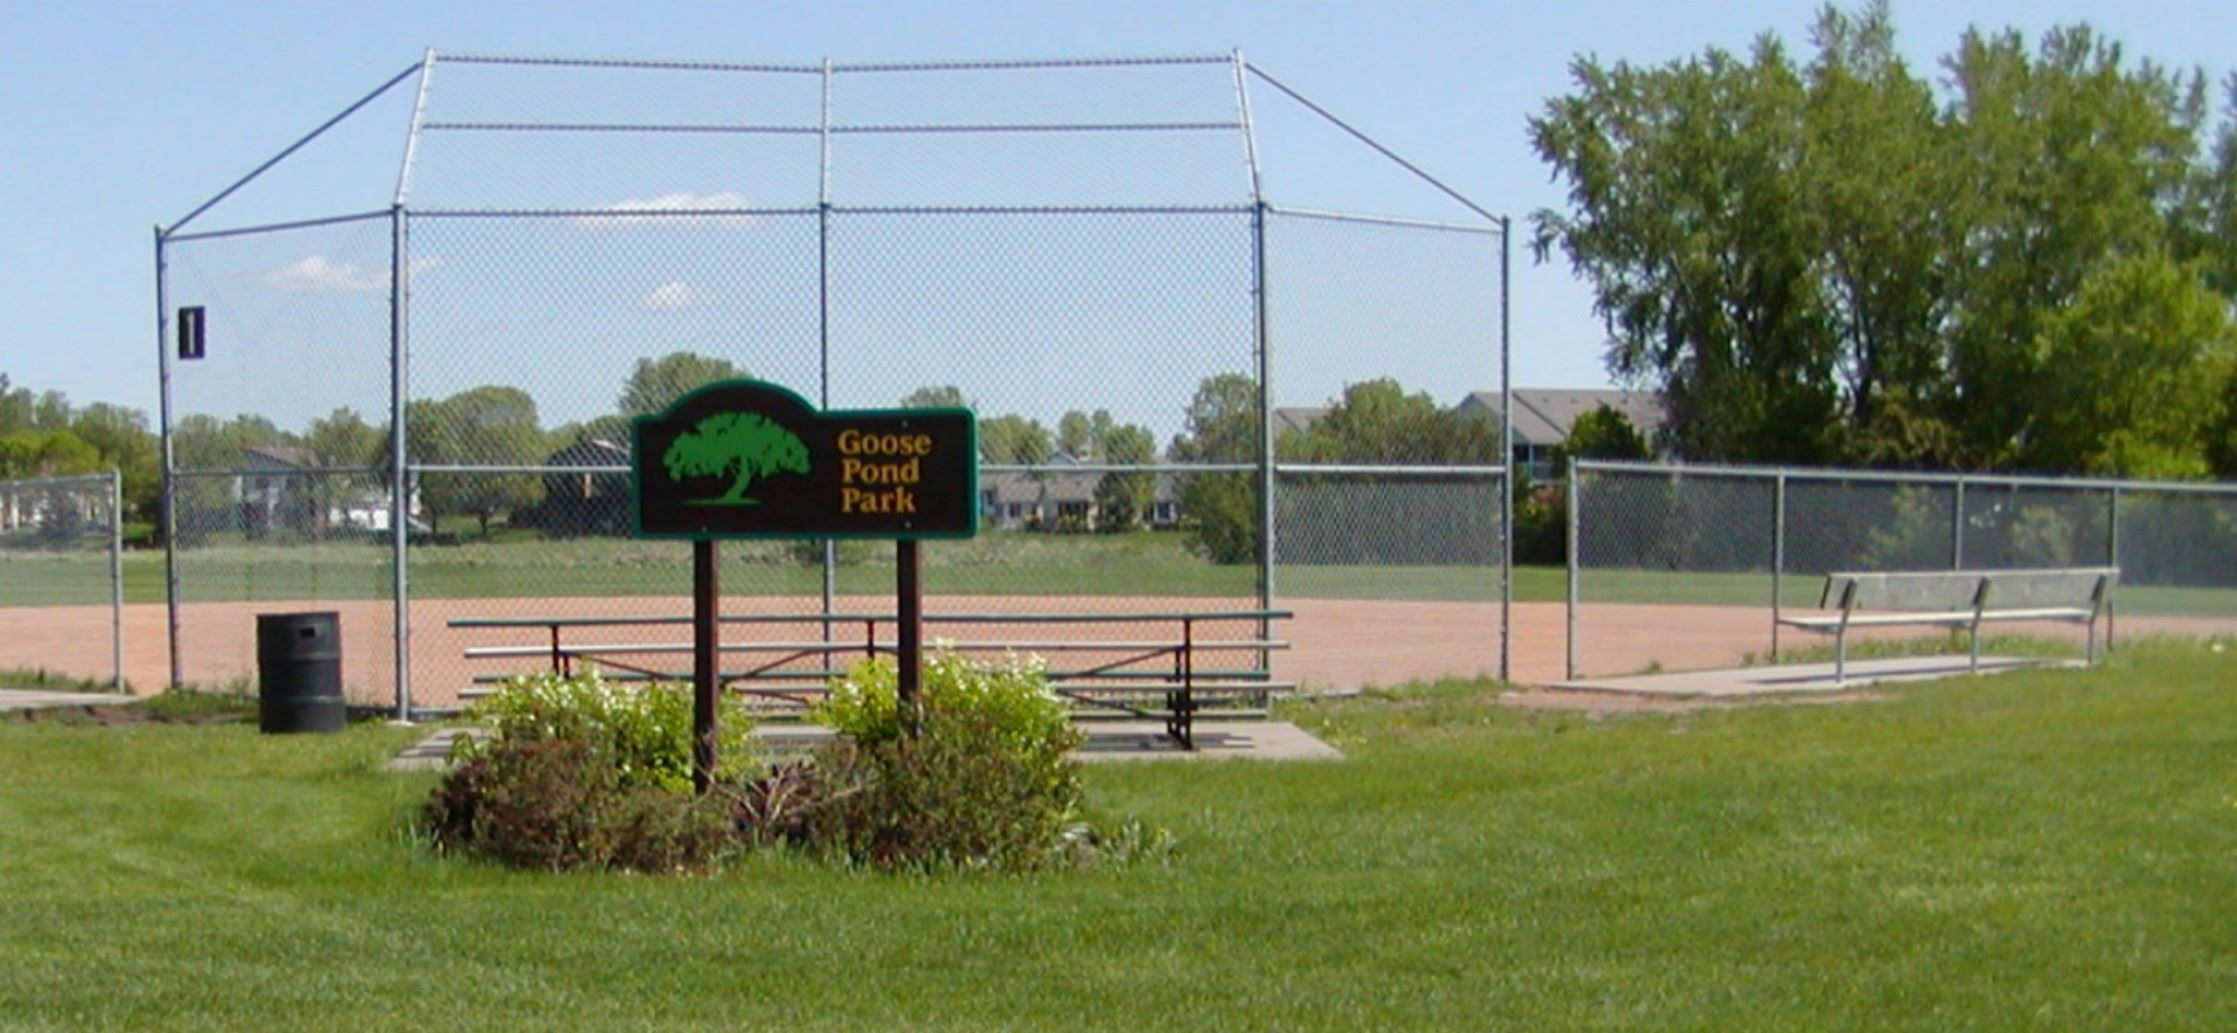 Image of Goosepond Park Sign with Ballfield